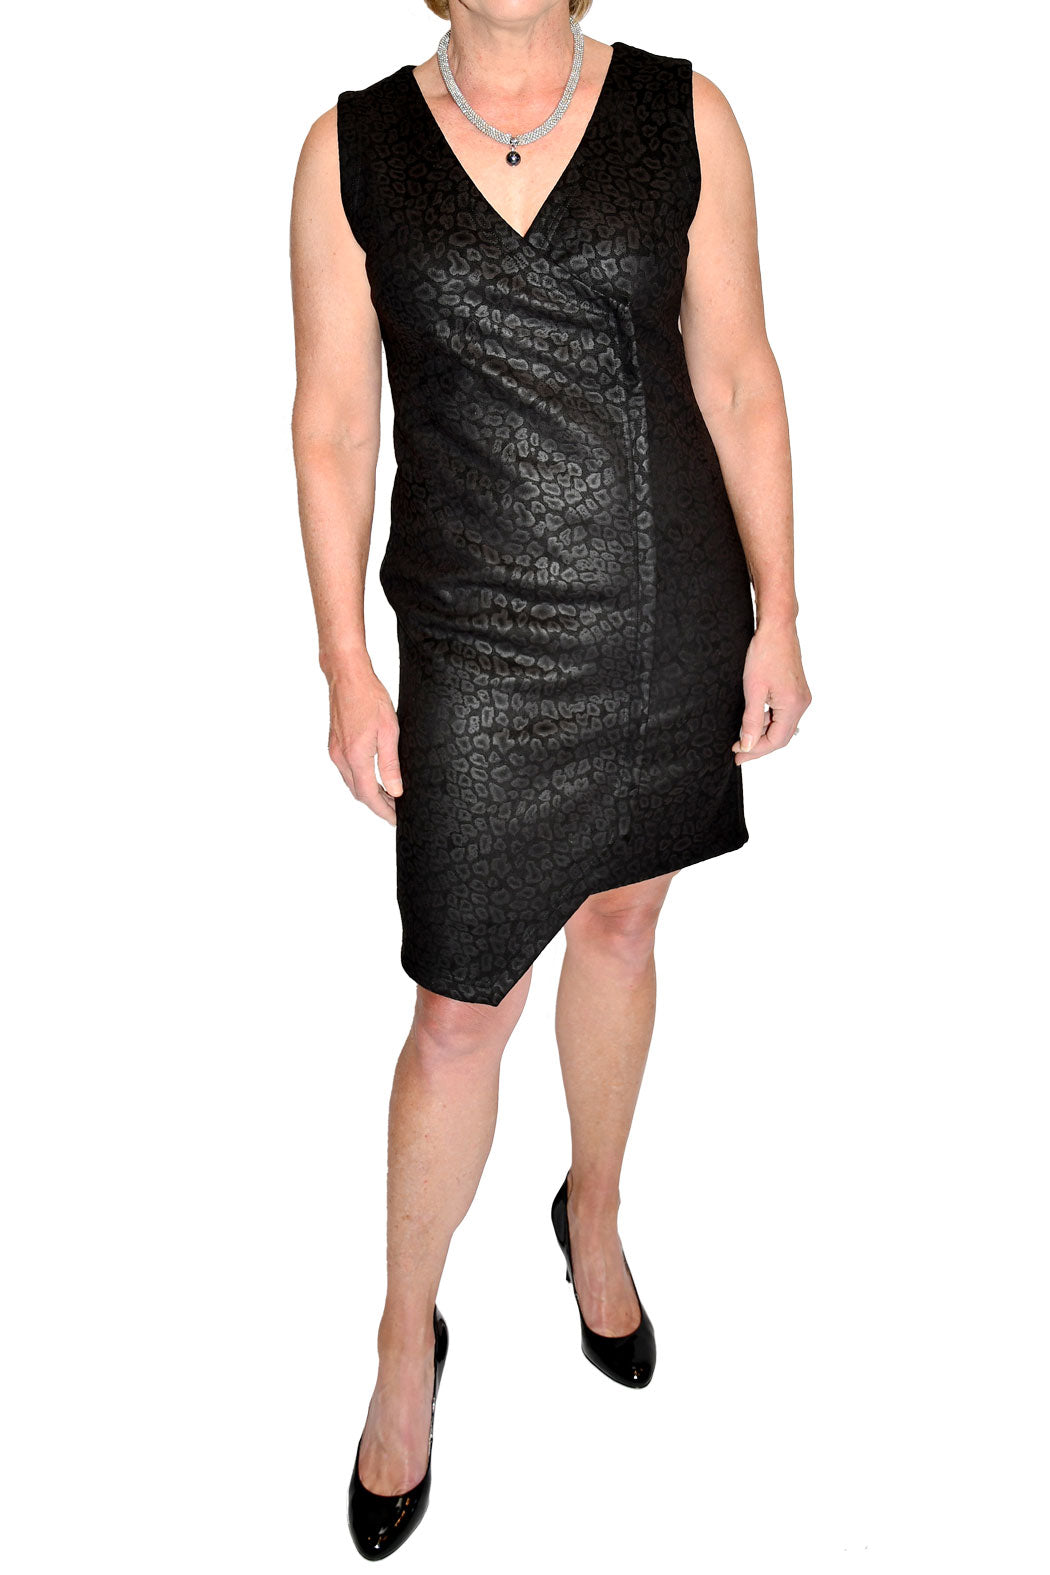 Front view of v-neck leopard front dress with asymmetrical hemline from 209 West.